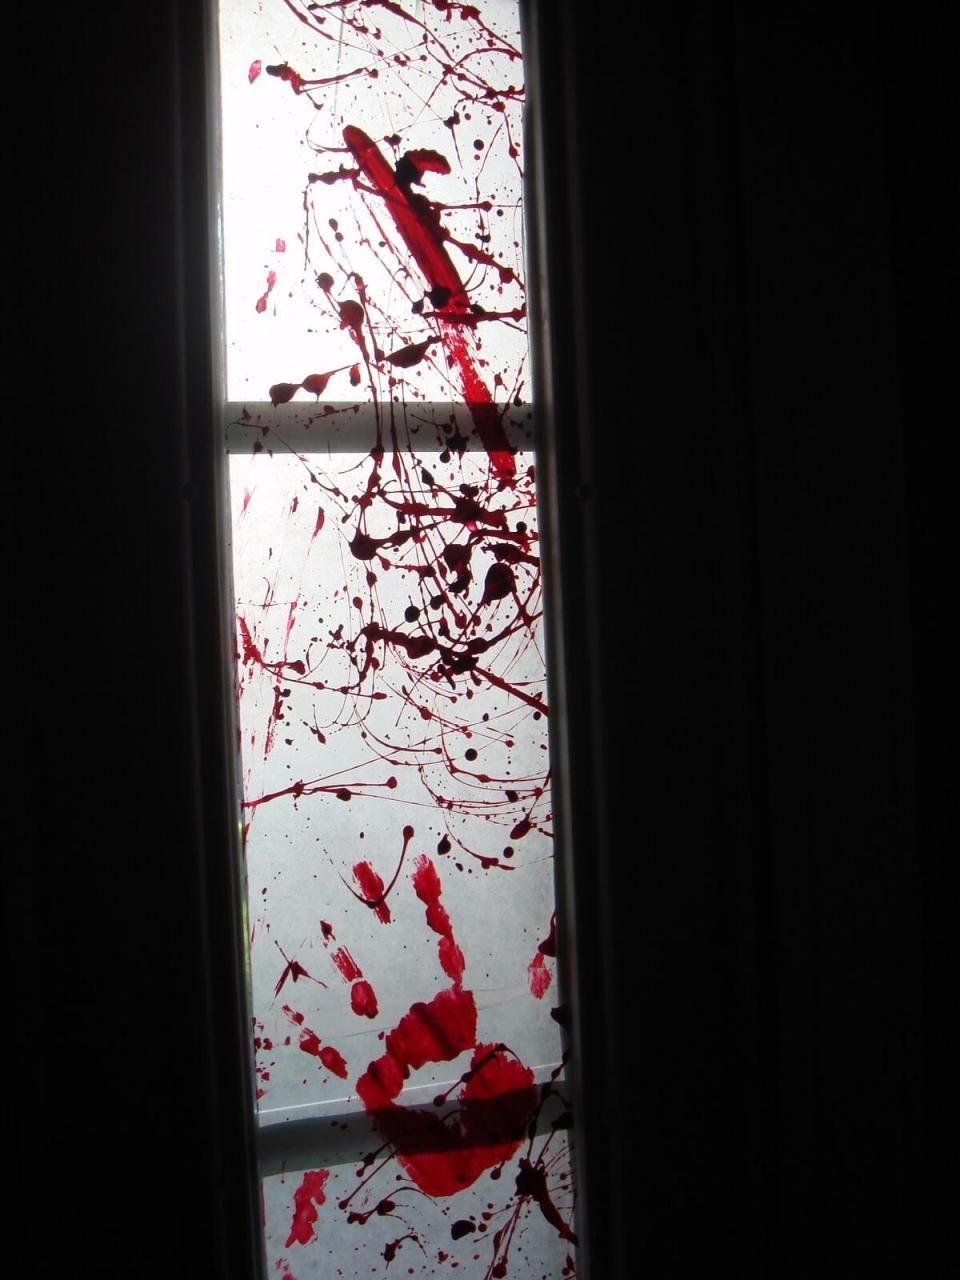 Blood Splatter Galore | DIY Halloween Window Decoration Ideas